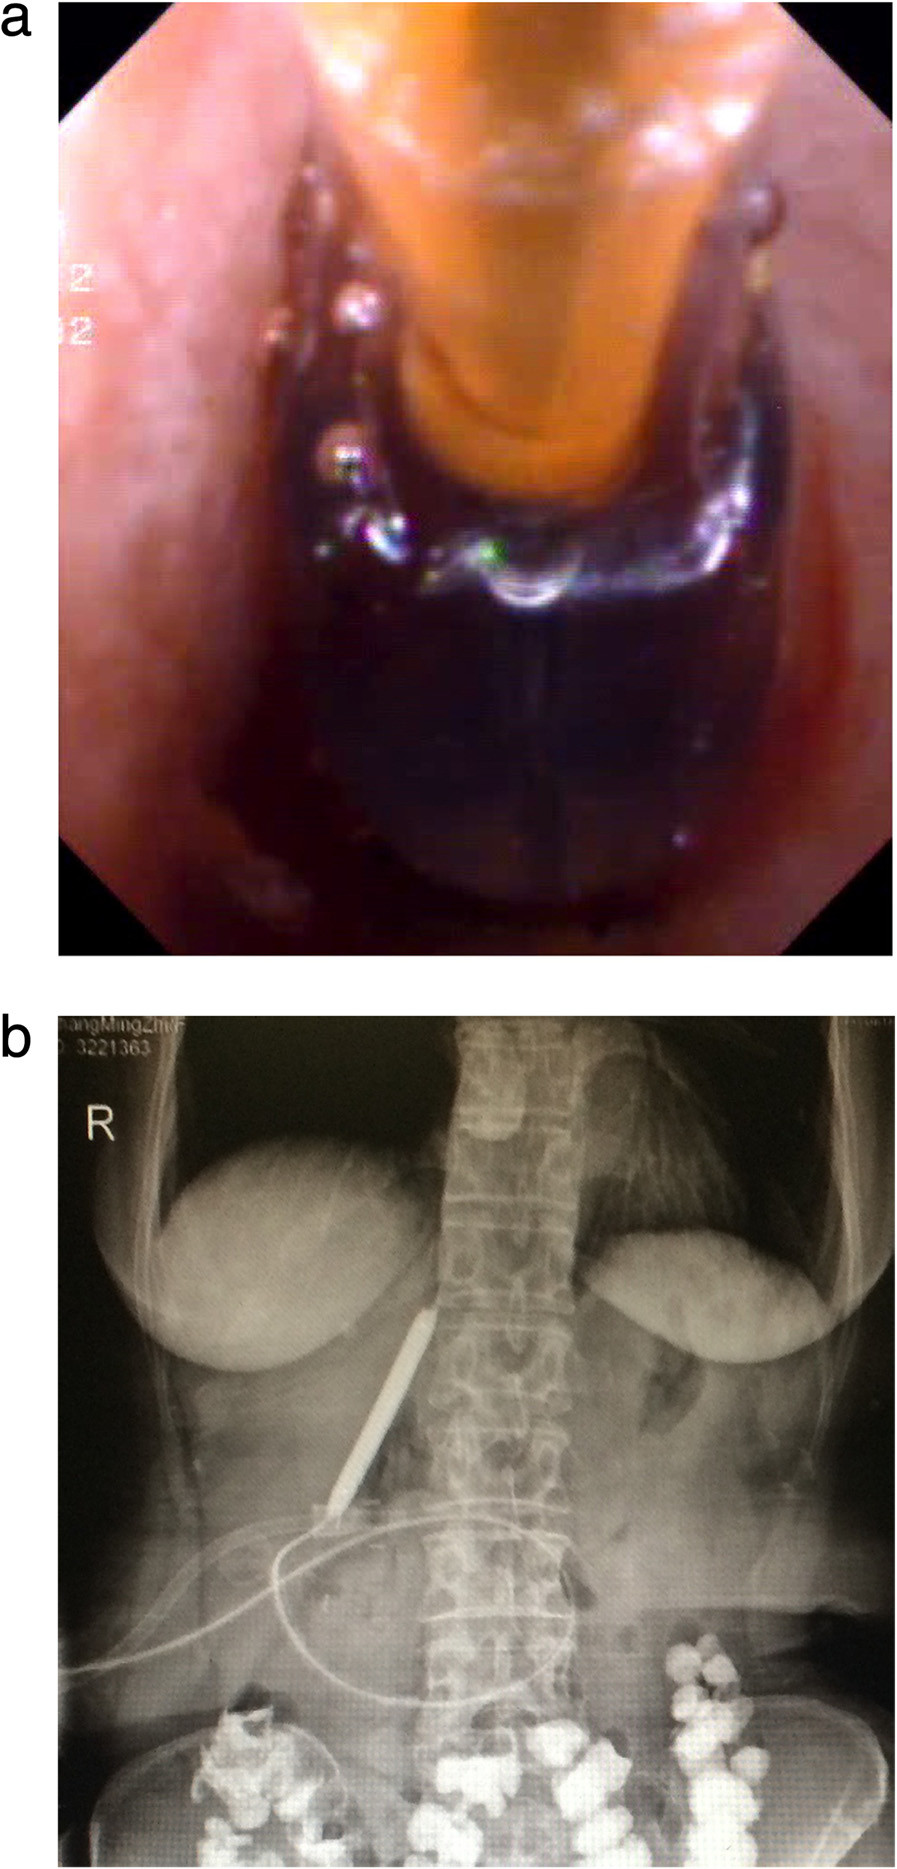 Balloon dilation of anastomotic strictures: a) Choledochoscopic balloon dilatation of the anastomotic stricture under the guidance of the yellow zebra guide wire. b) Balloon dilation under X-ray